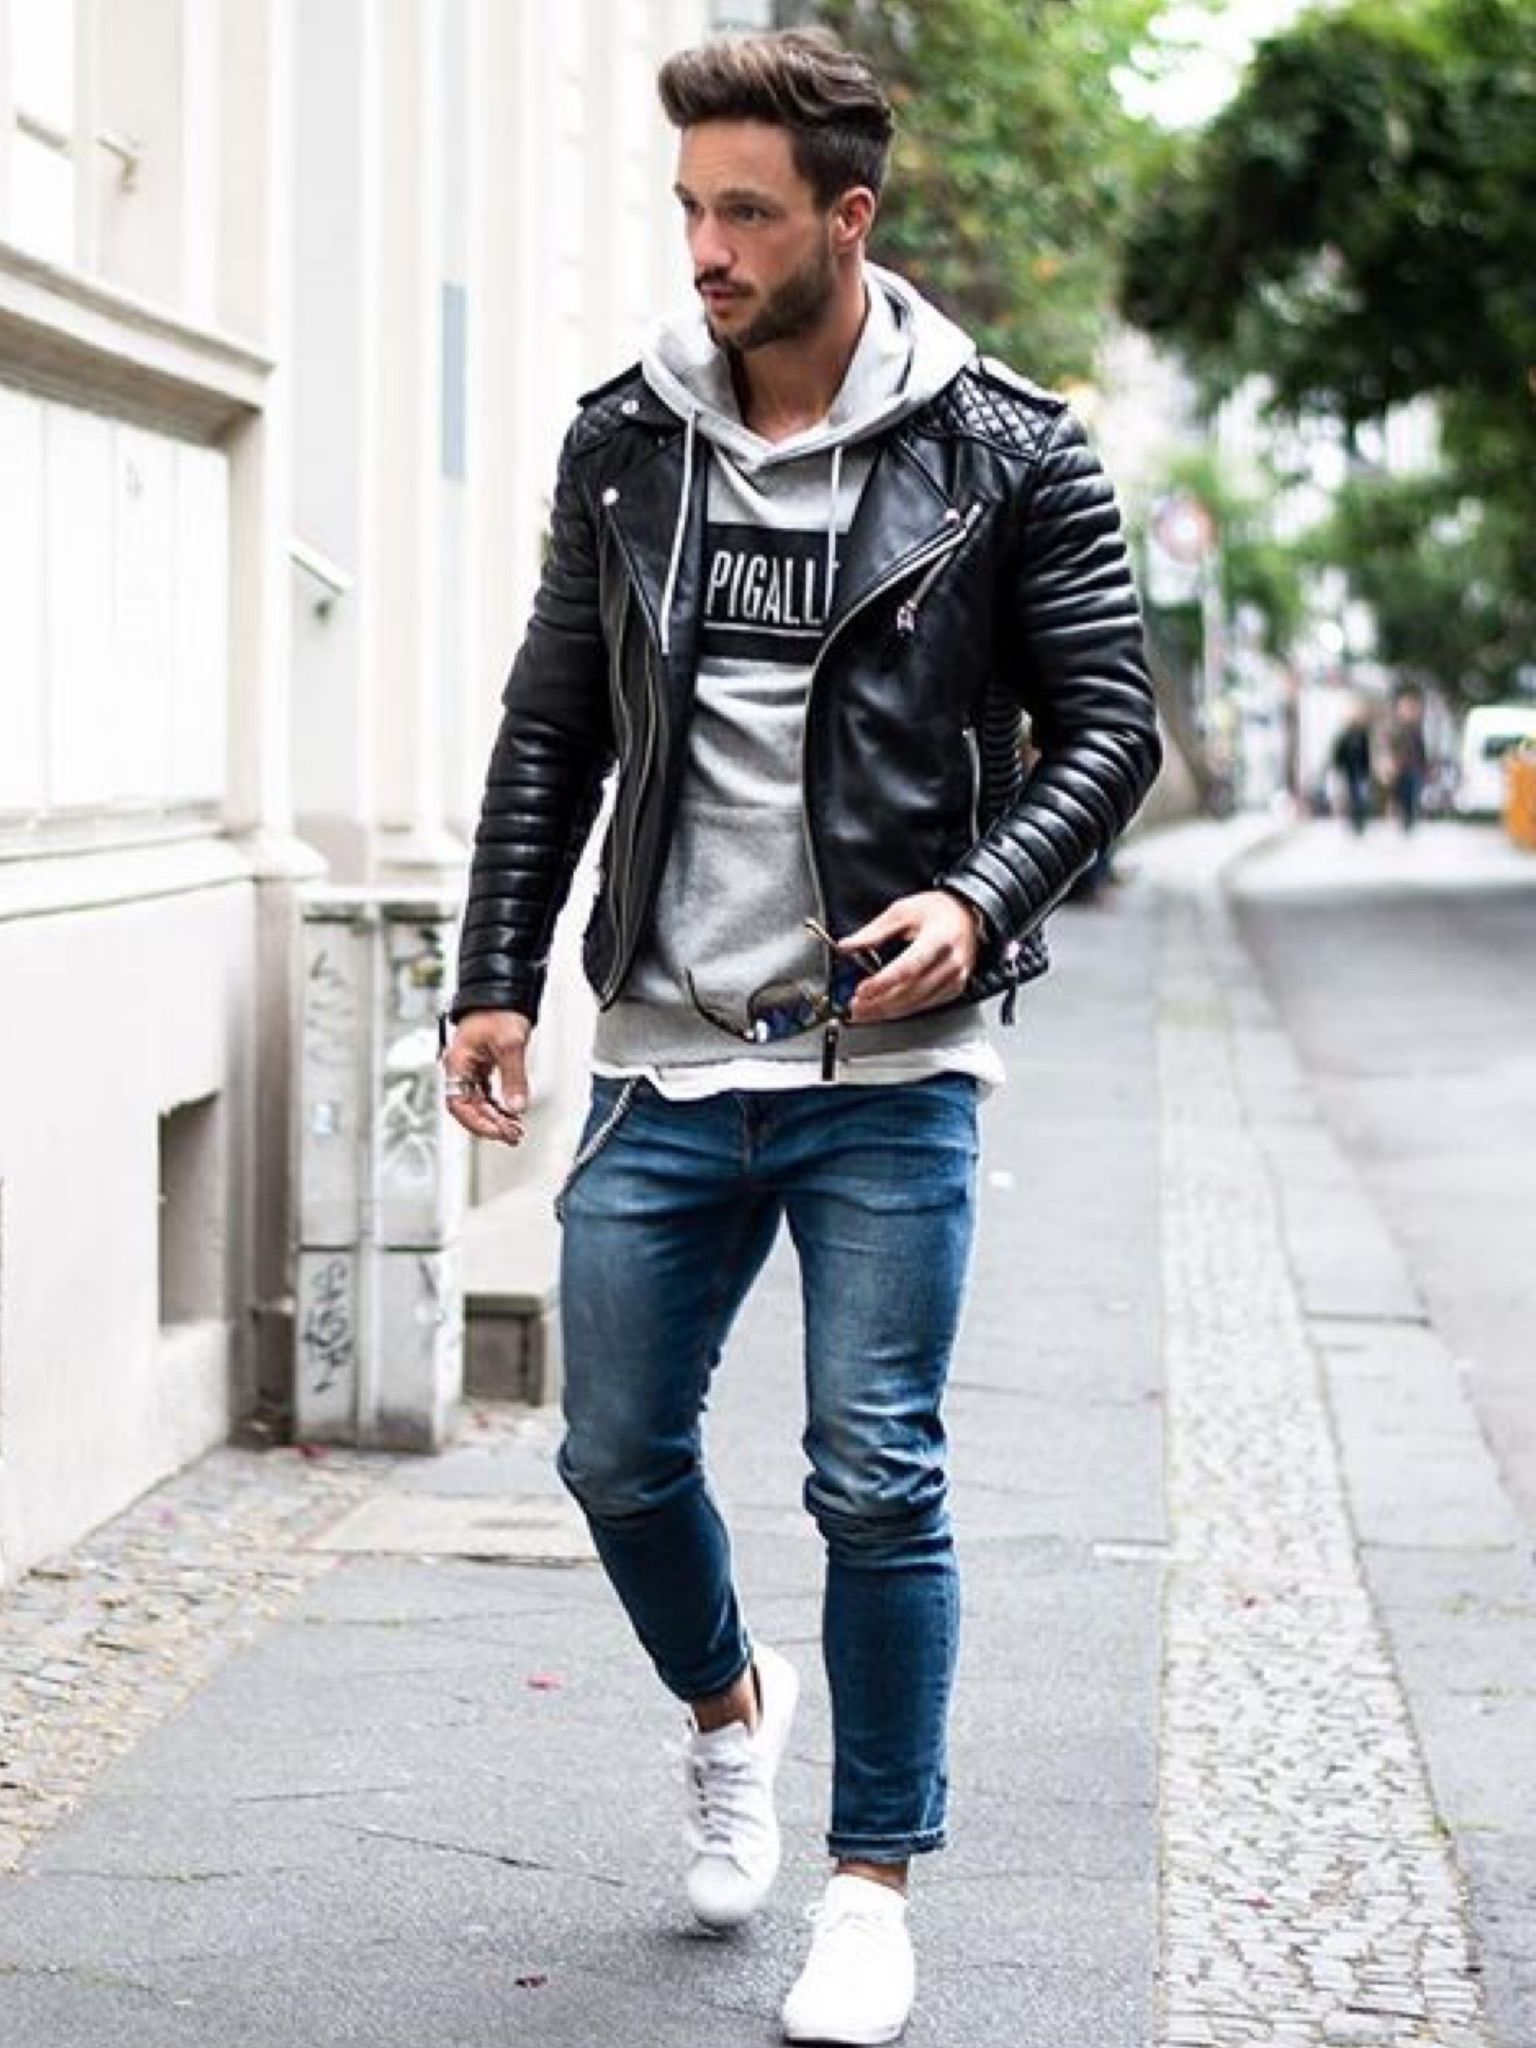 fashion for men  men\u0027s style  men\u0027s fashion  men\u0027s wear  mode homme